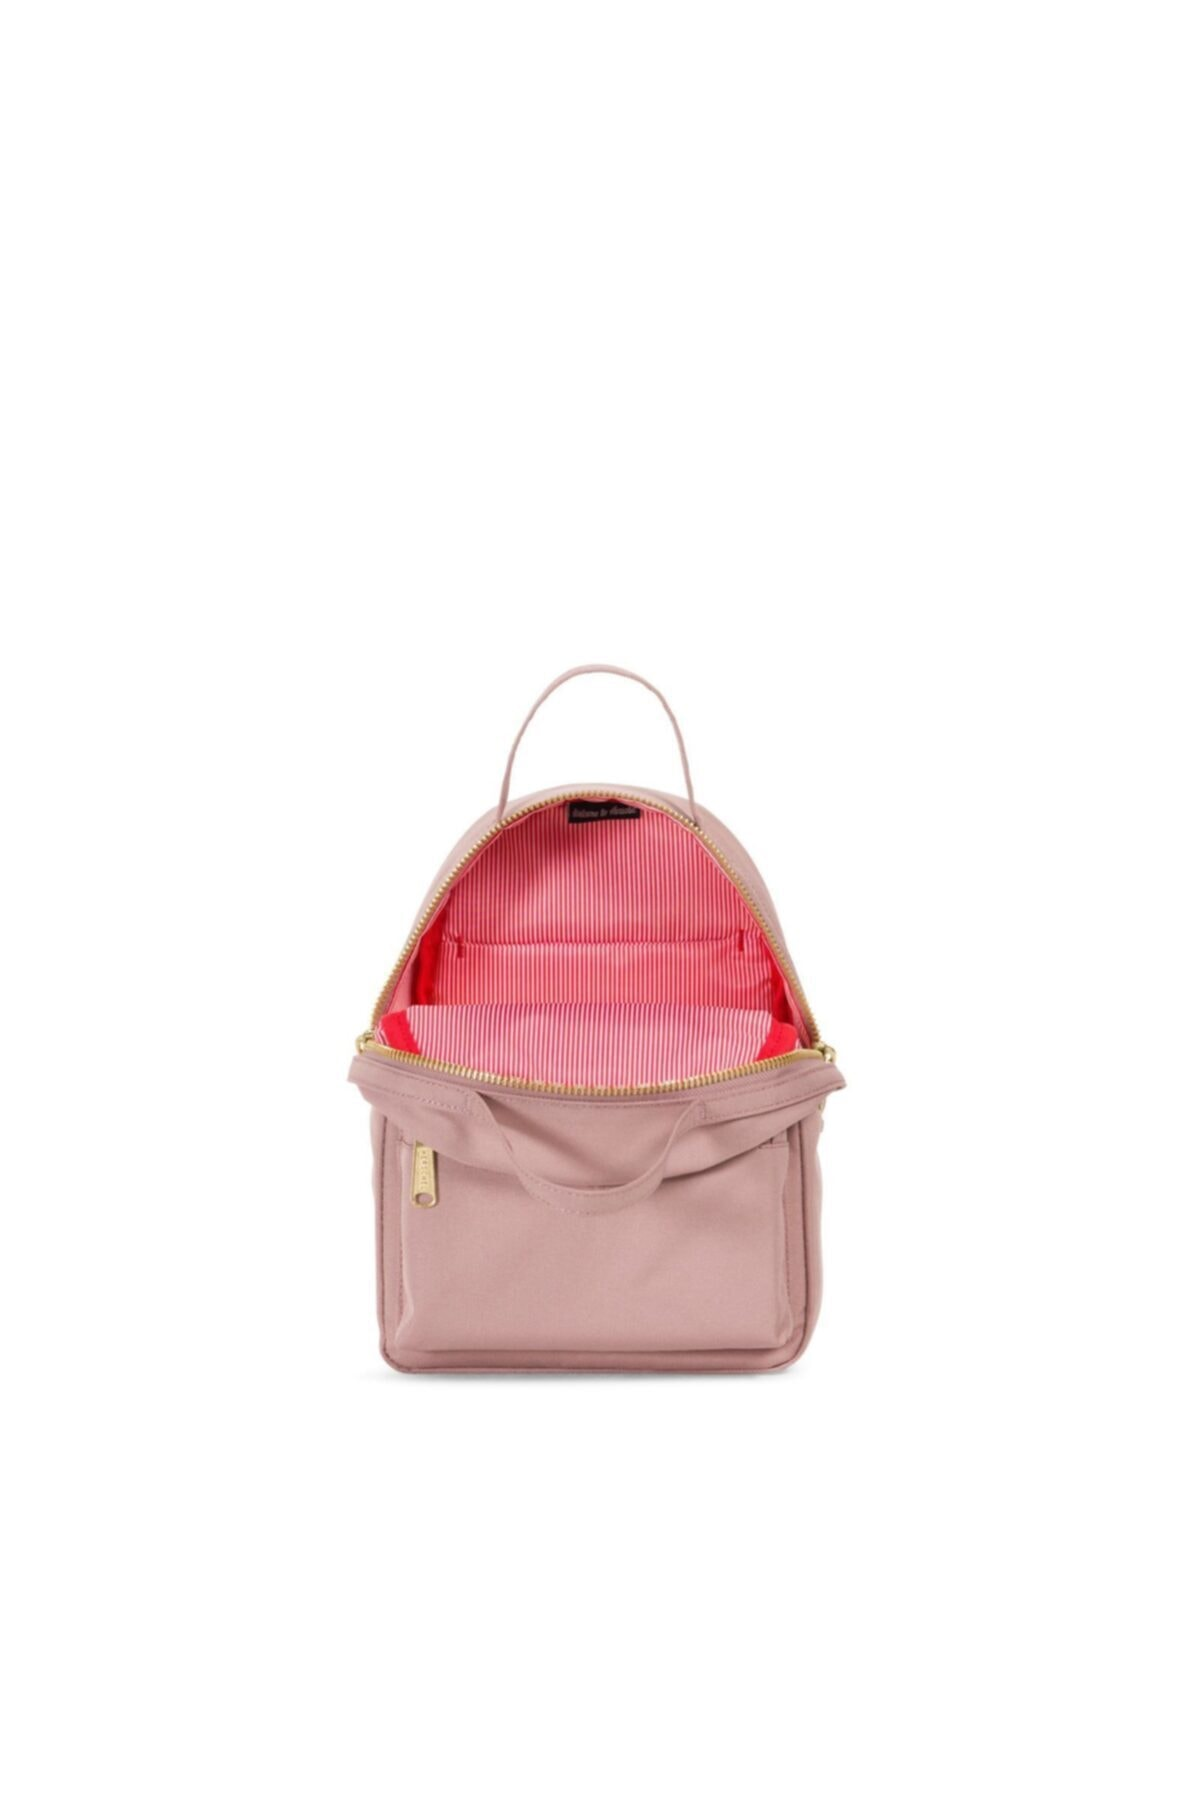 Herschel Supply Co. Unisex Pembe Sırt Çantası 2